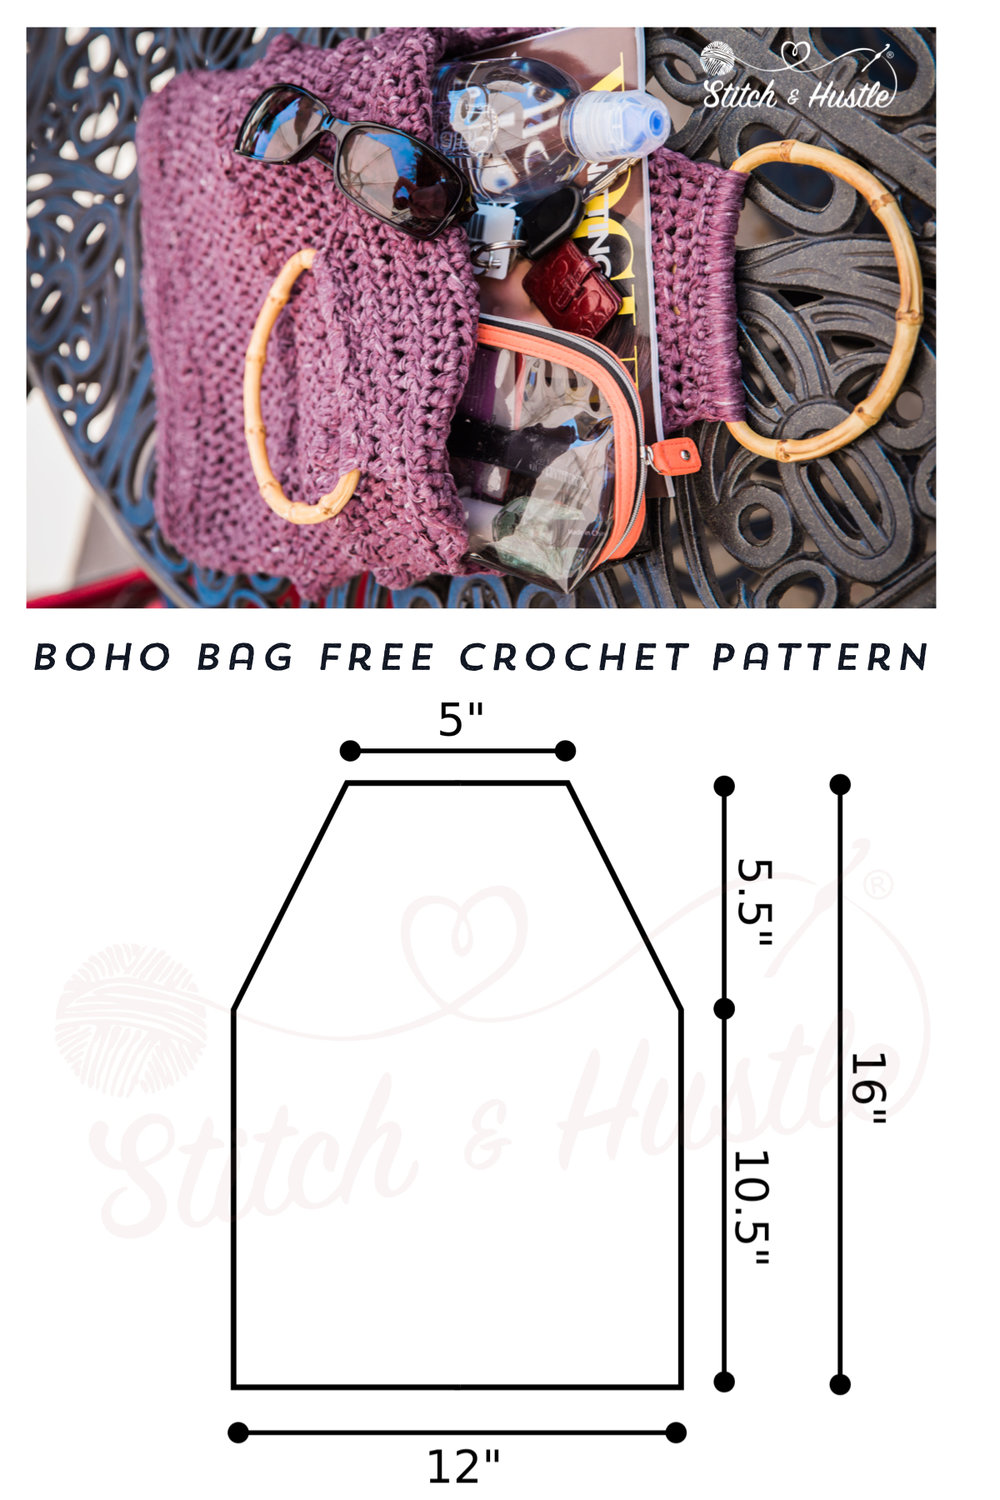 Downtown_Crochet_Bag_Free_pattern_6.jpg